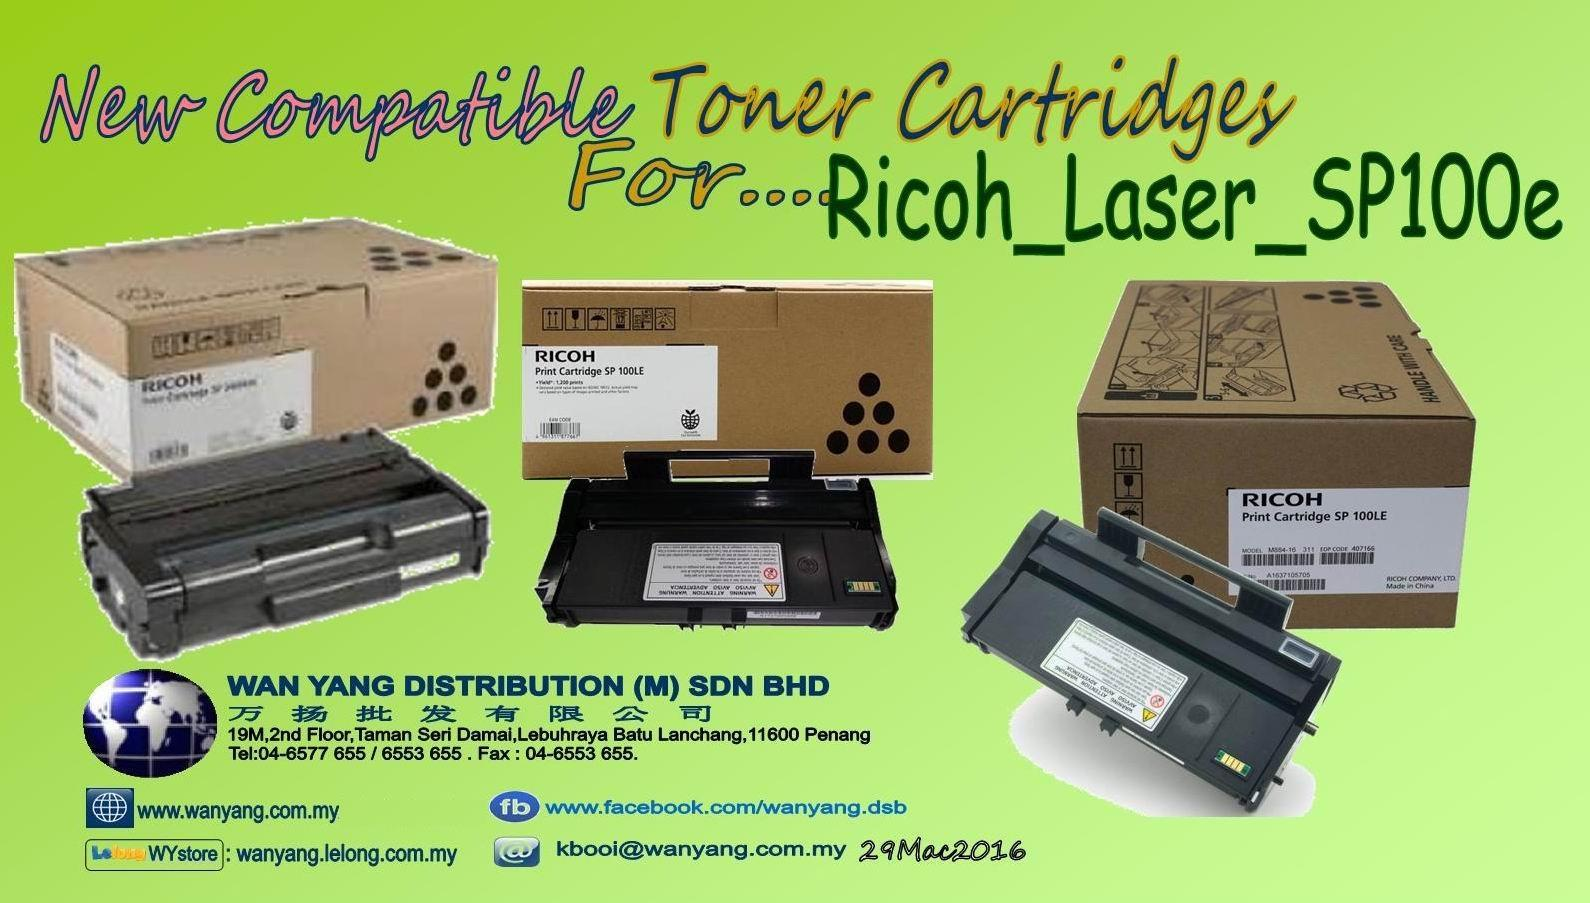 Ricoh Laser SP100e Compatible Toner cartridges